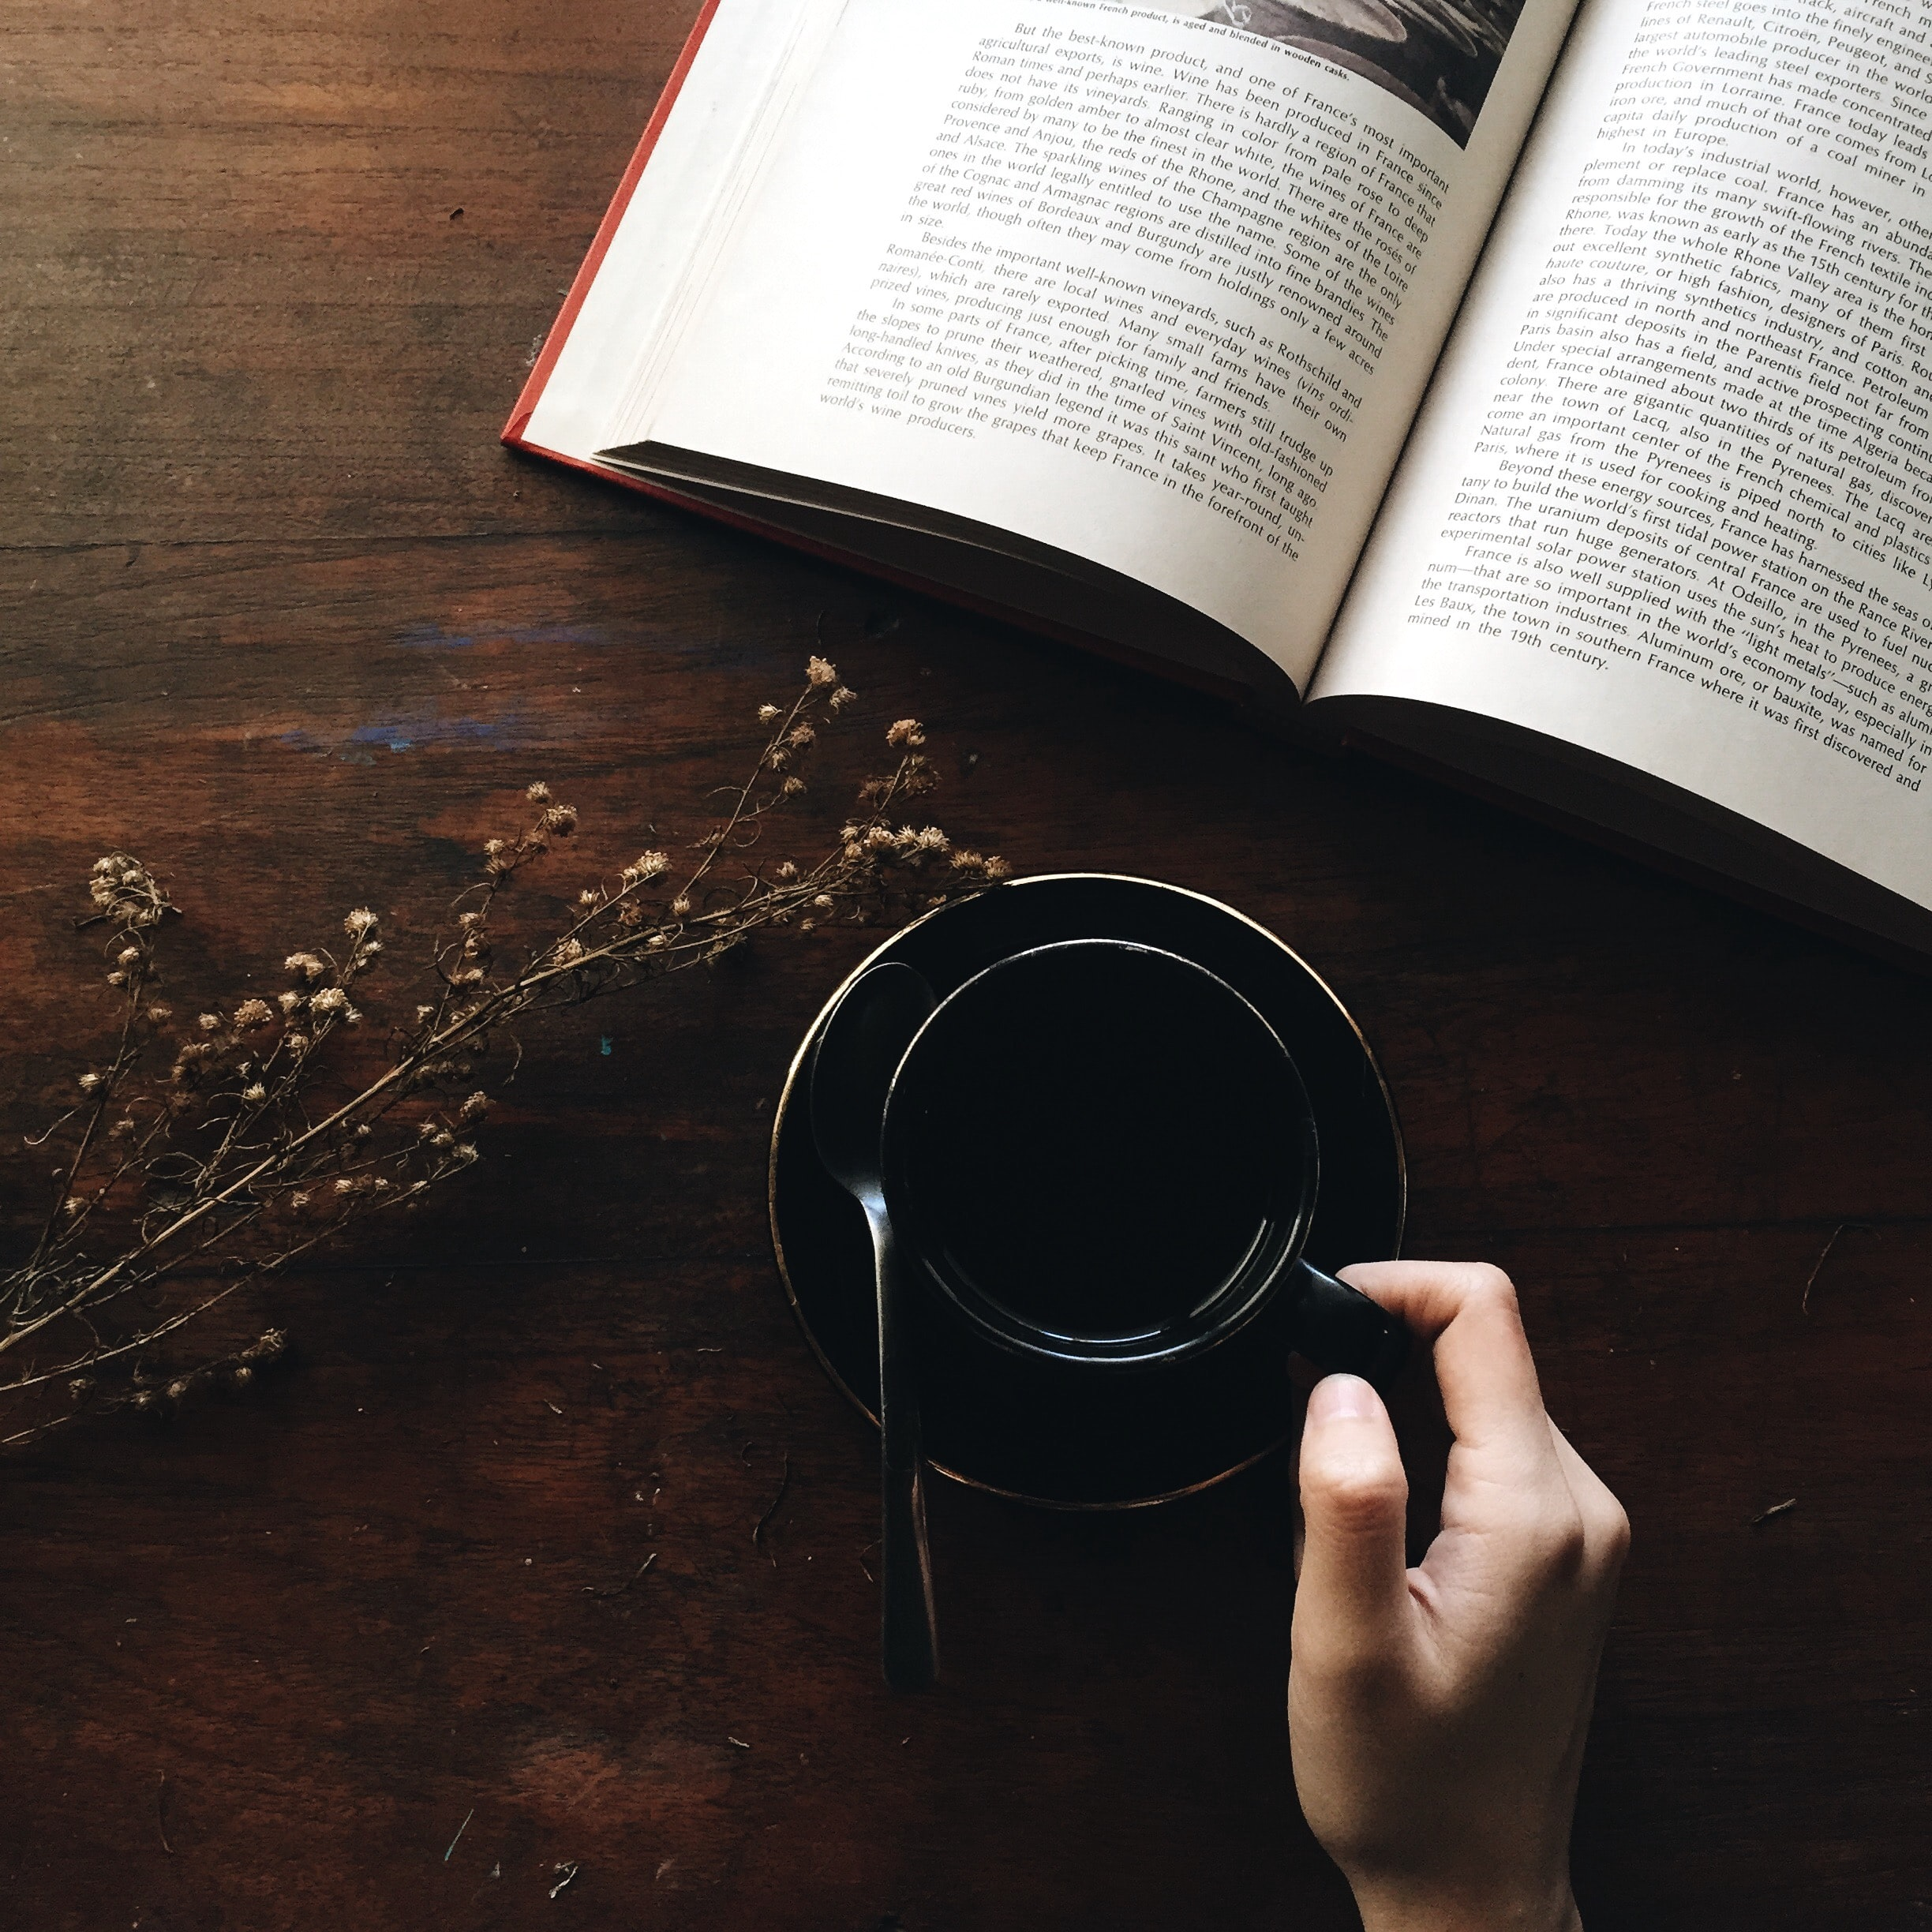 Photo Via: https://unsplash.com/photos/P_p4NGz5Cb4, person reading book with coffee.